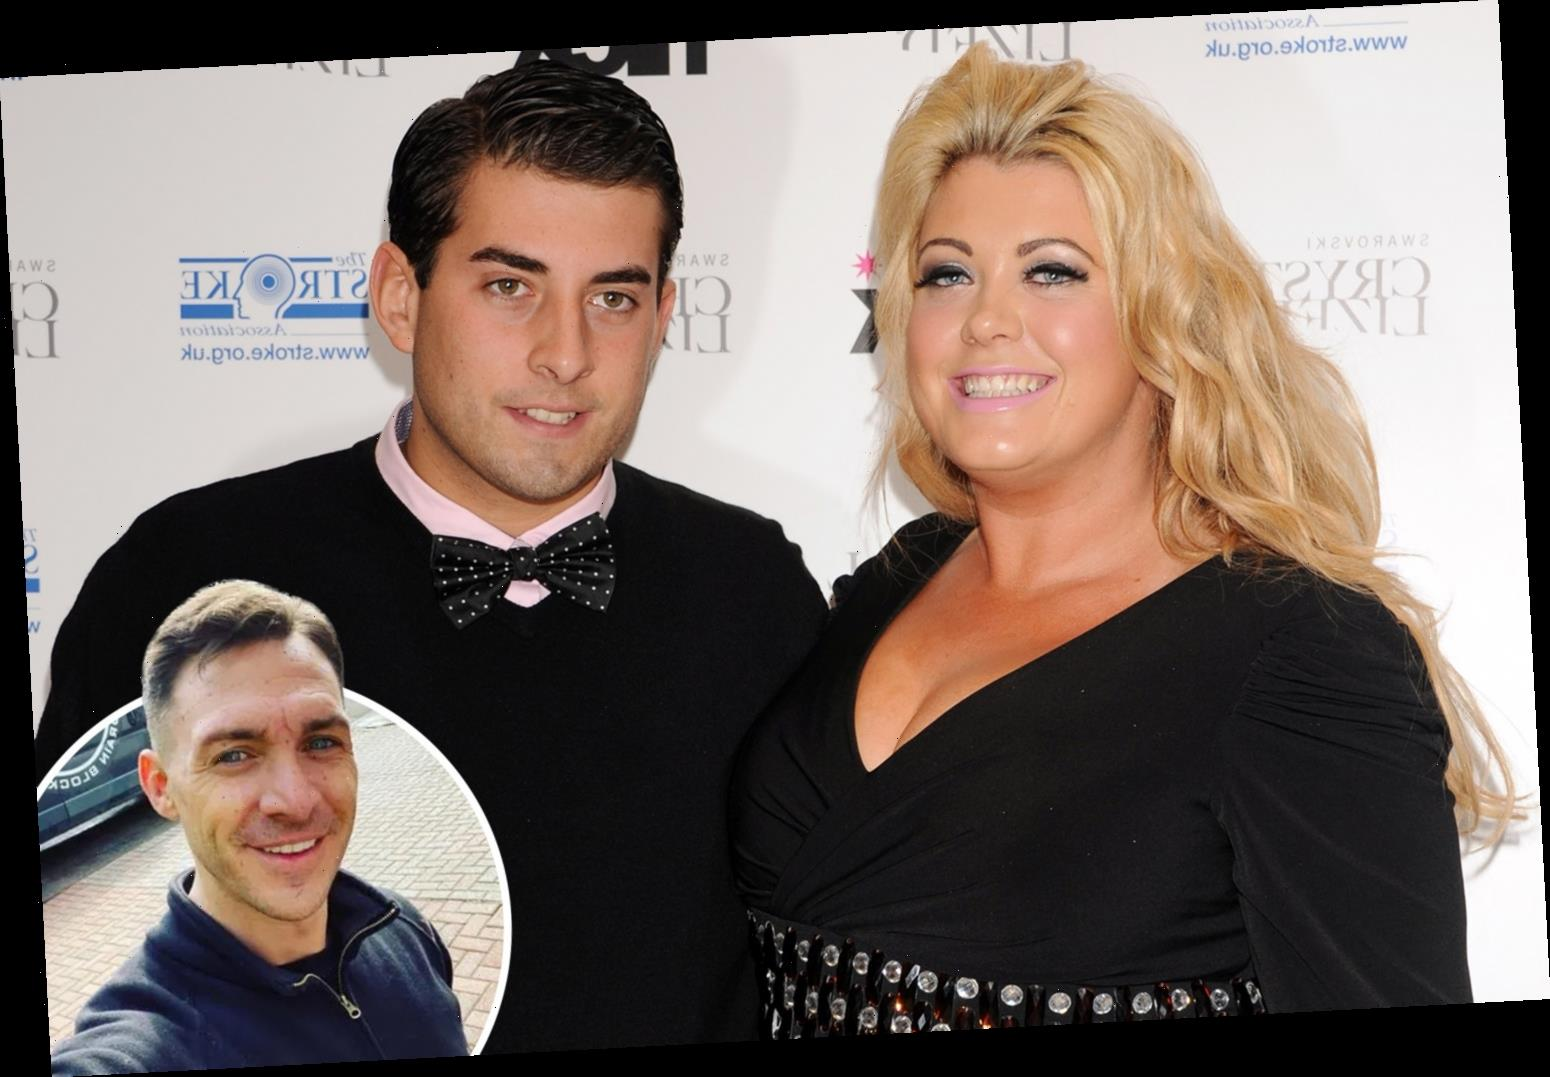 Towie's Kirk Norcross says Gemma Collins and Arg will be ENGAGED soon as he calls Lauren Pope the 'love of my life' – The Sun